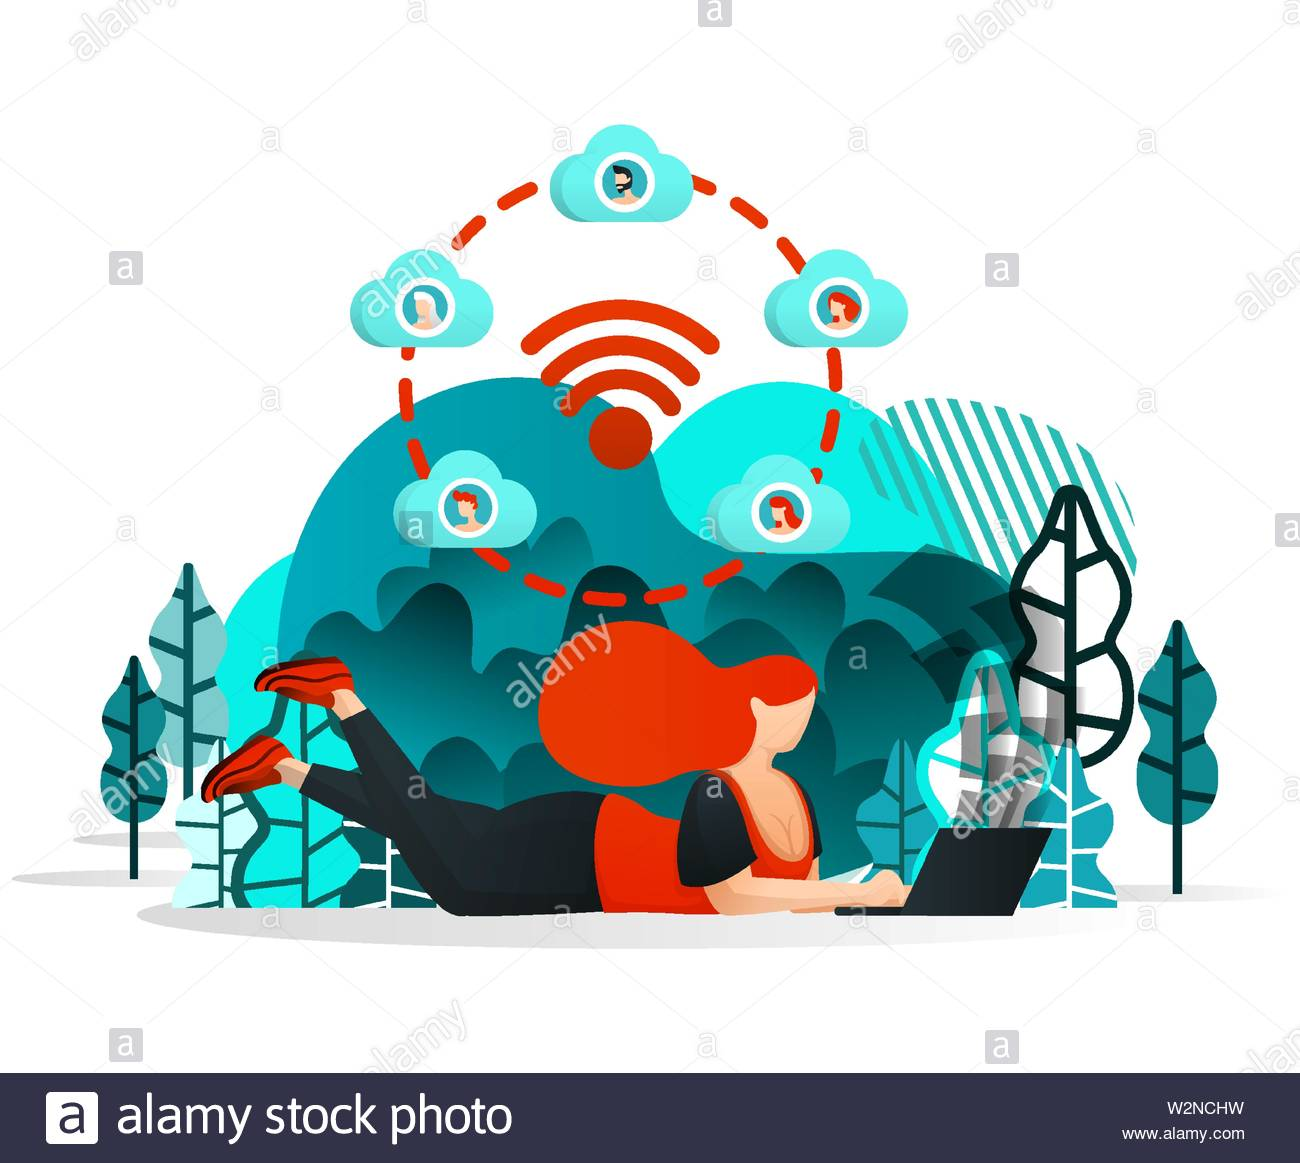 Internet of things to Share. Girl or People Can Work With Friend Anywhere Using Internet and Wifi Network. Flat Cartoon Style. Vector Illustration For - Stock Image